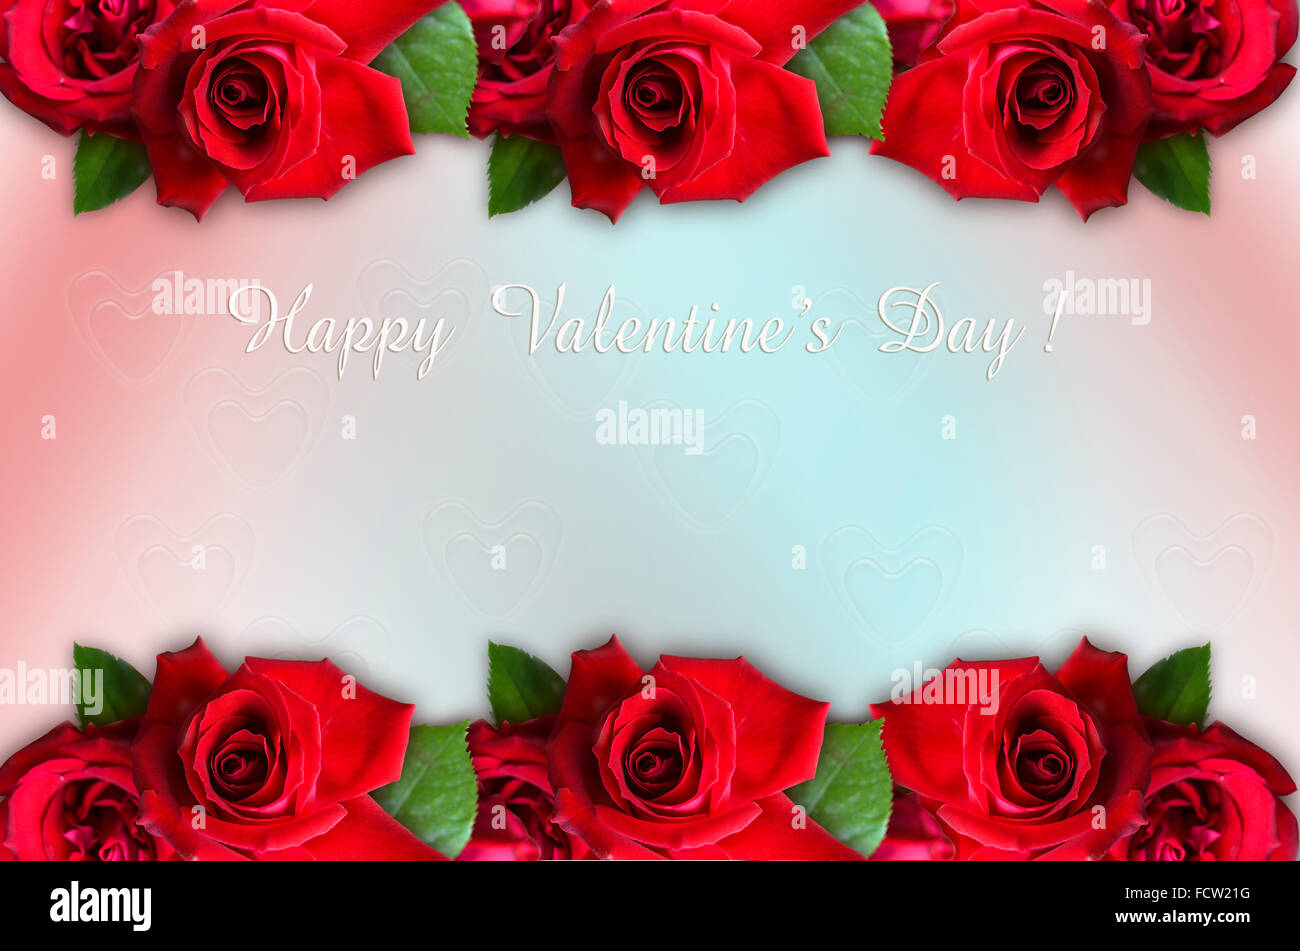 Parallel Borders Of Red Roses Together With Happy Valentine S Day